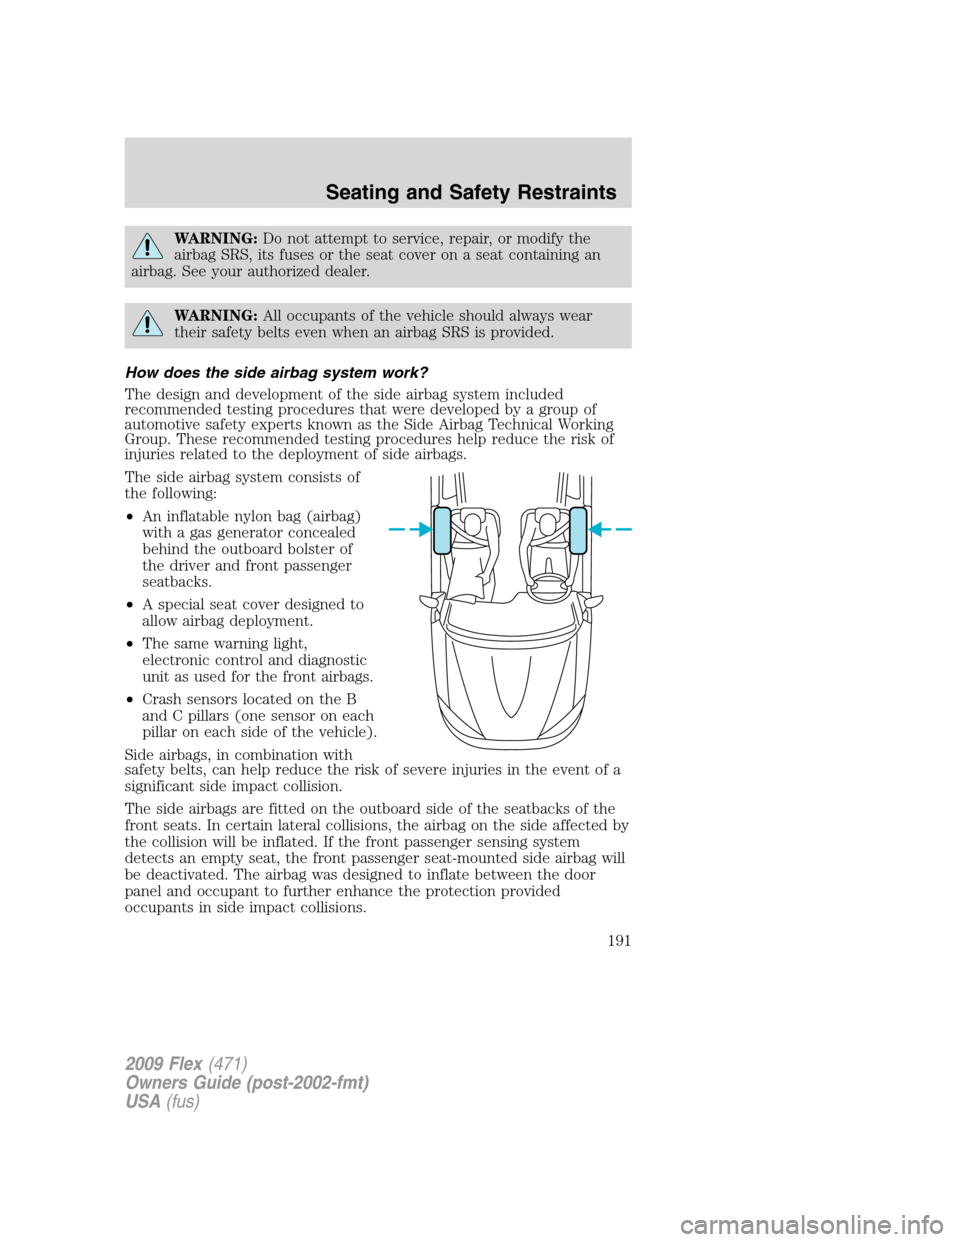 FORD FLEX 2009 1.G Owners Manual, Page 191